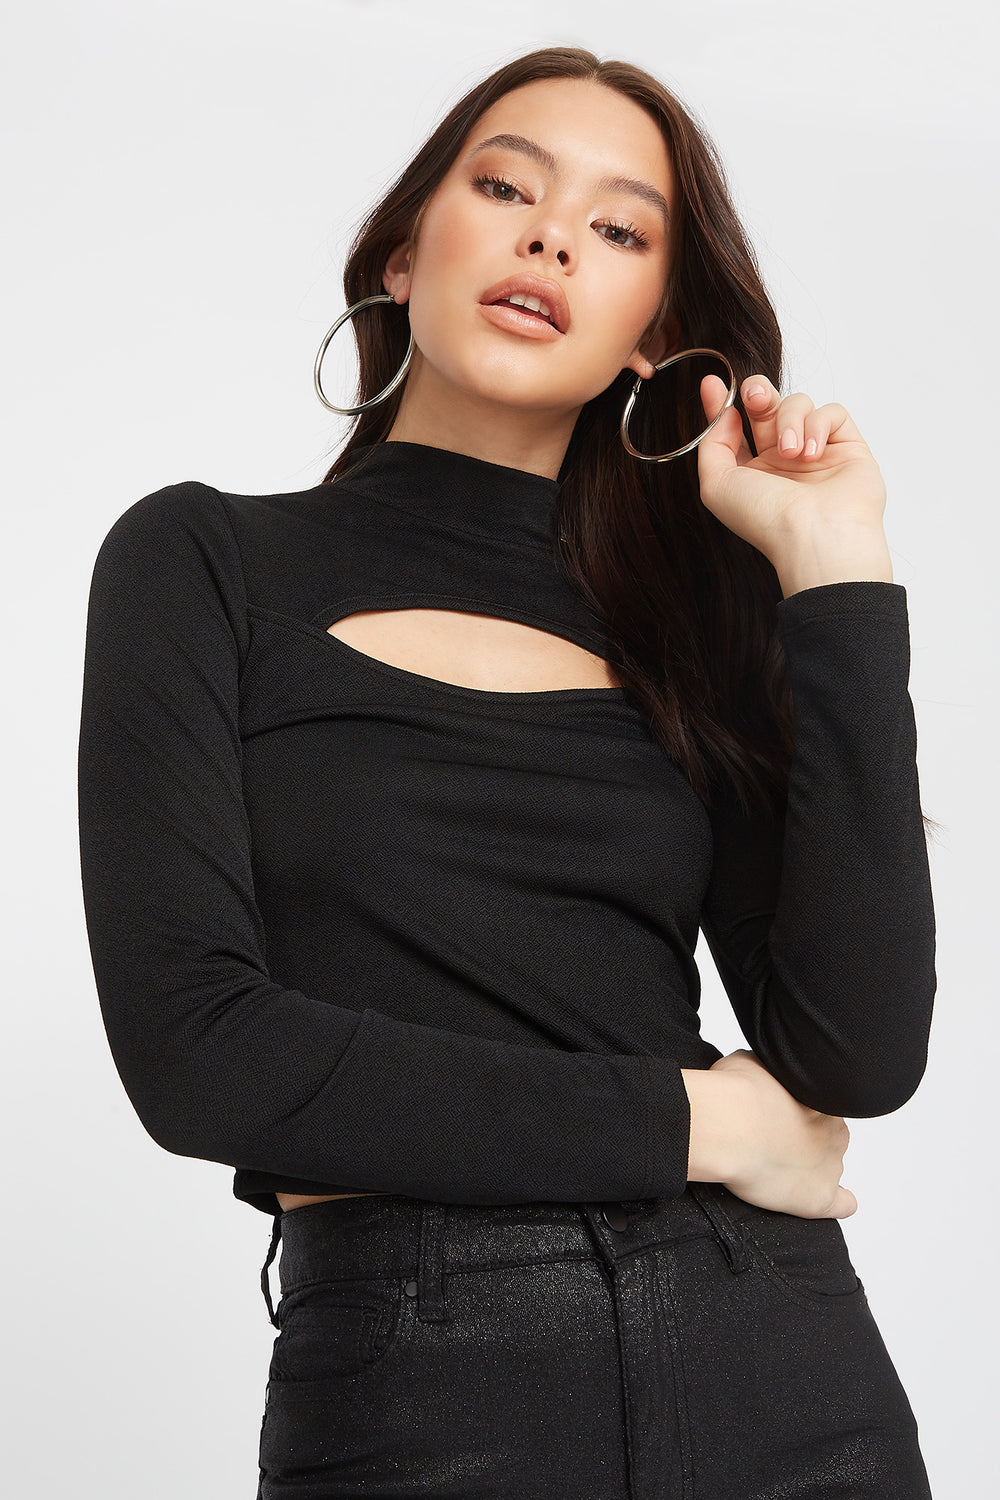 Crepe Cut Out Turtleneck Long Sleeve Black